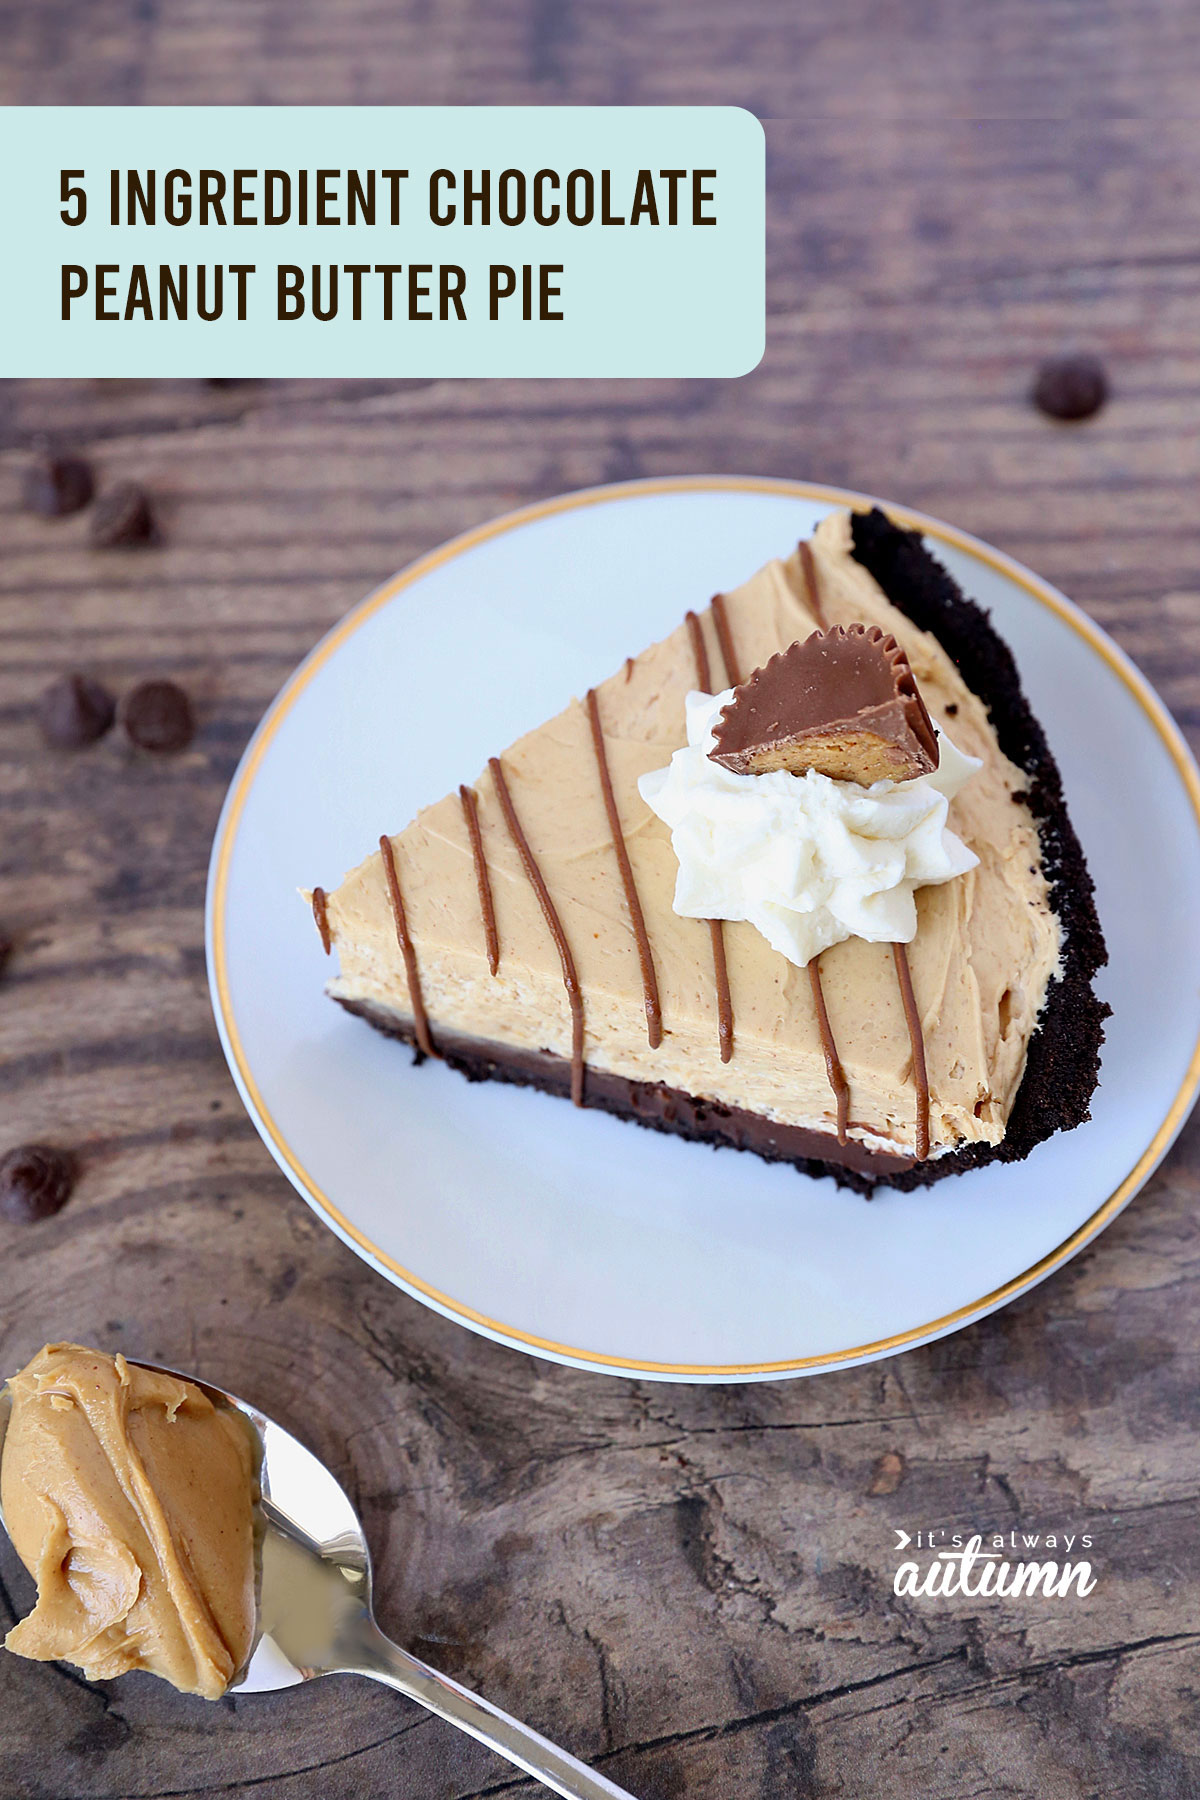 It only takes 5 ingredients and 15 minutes to make this light chocolate peanut butter pie!